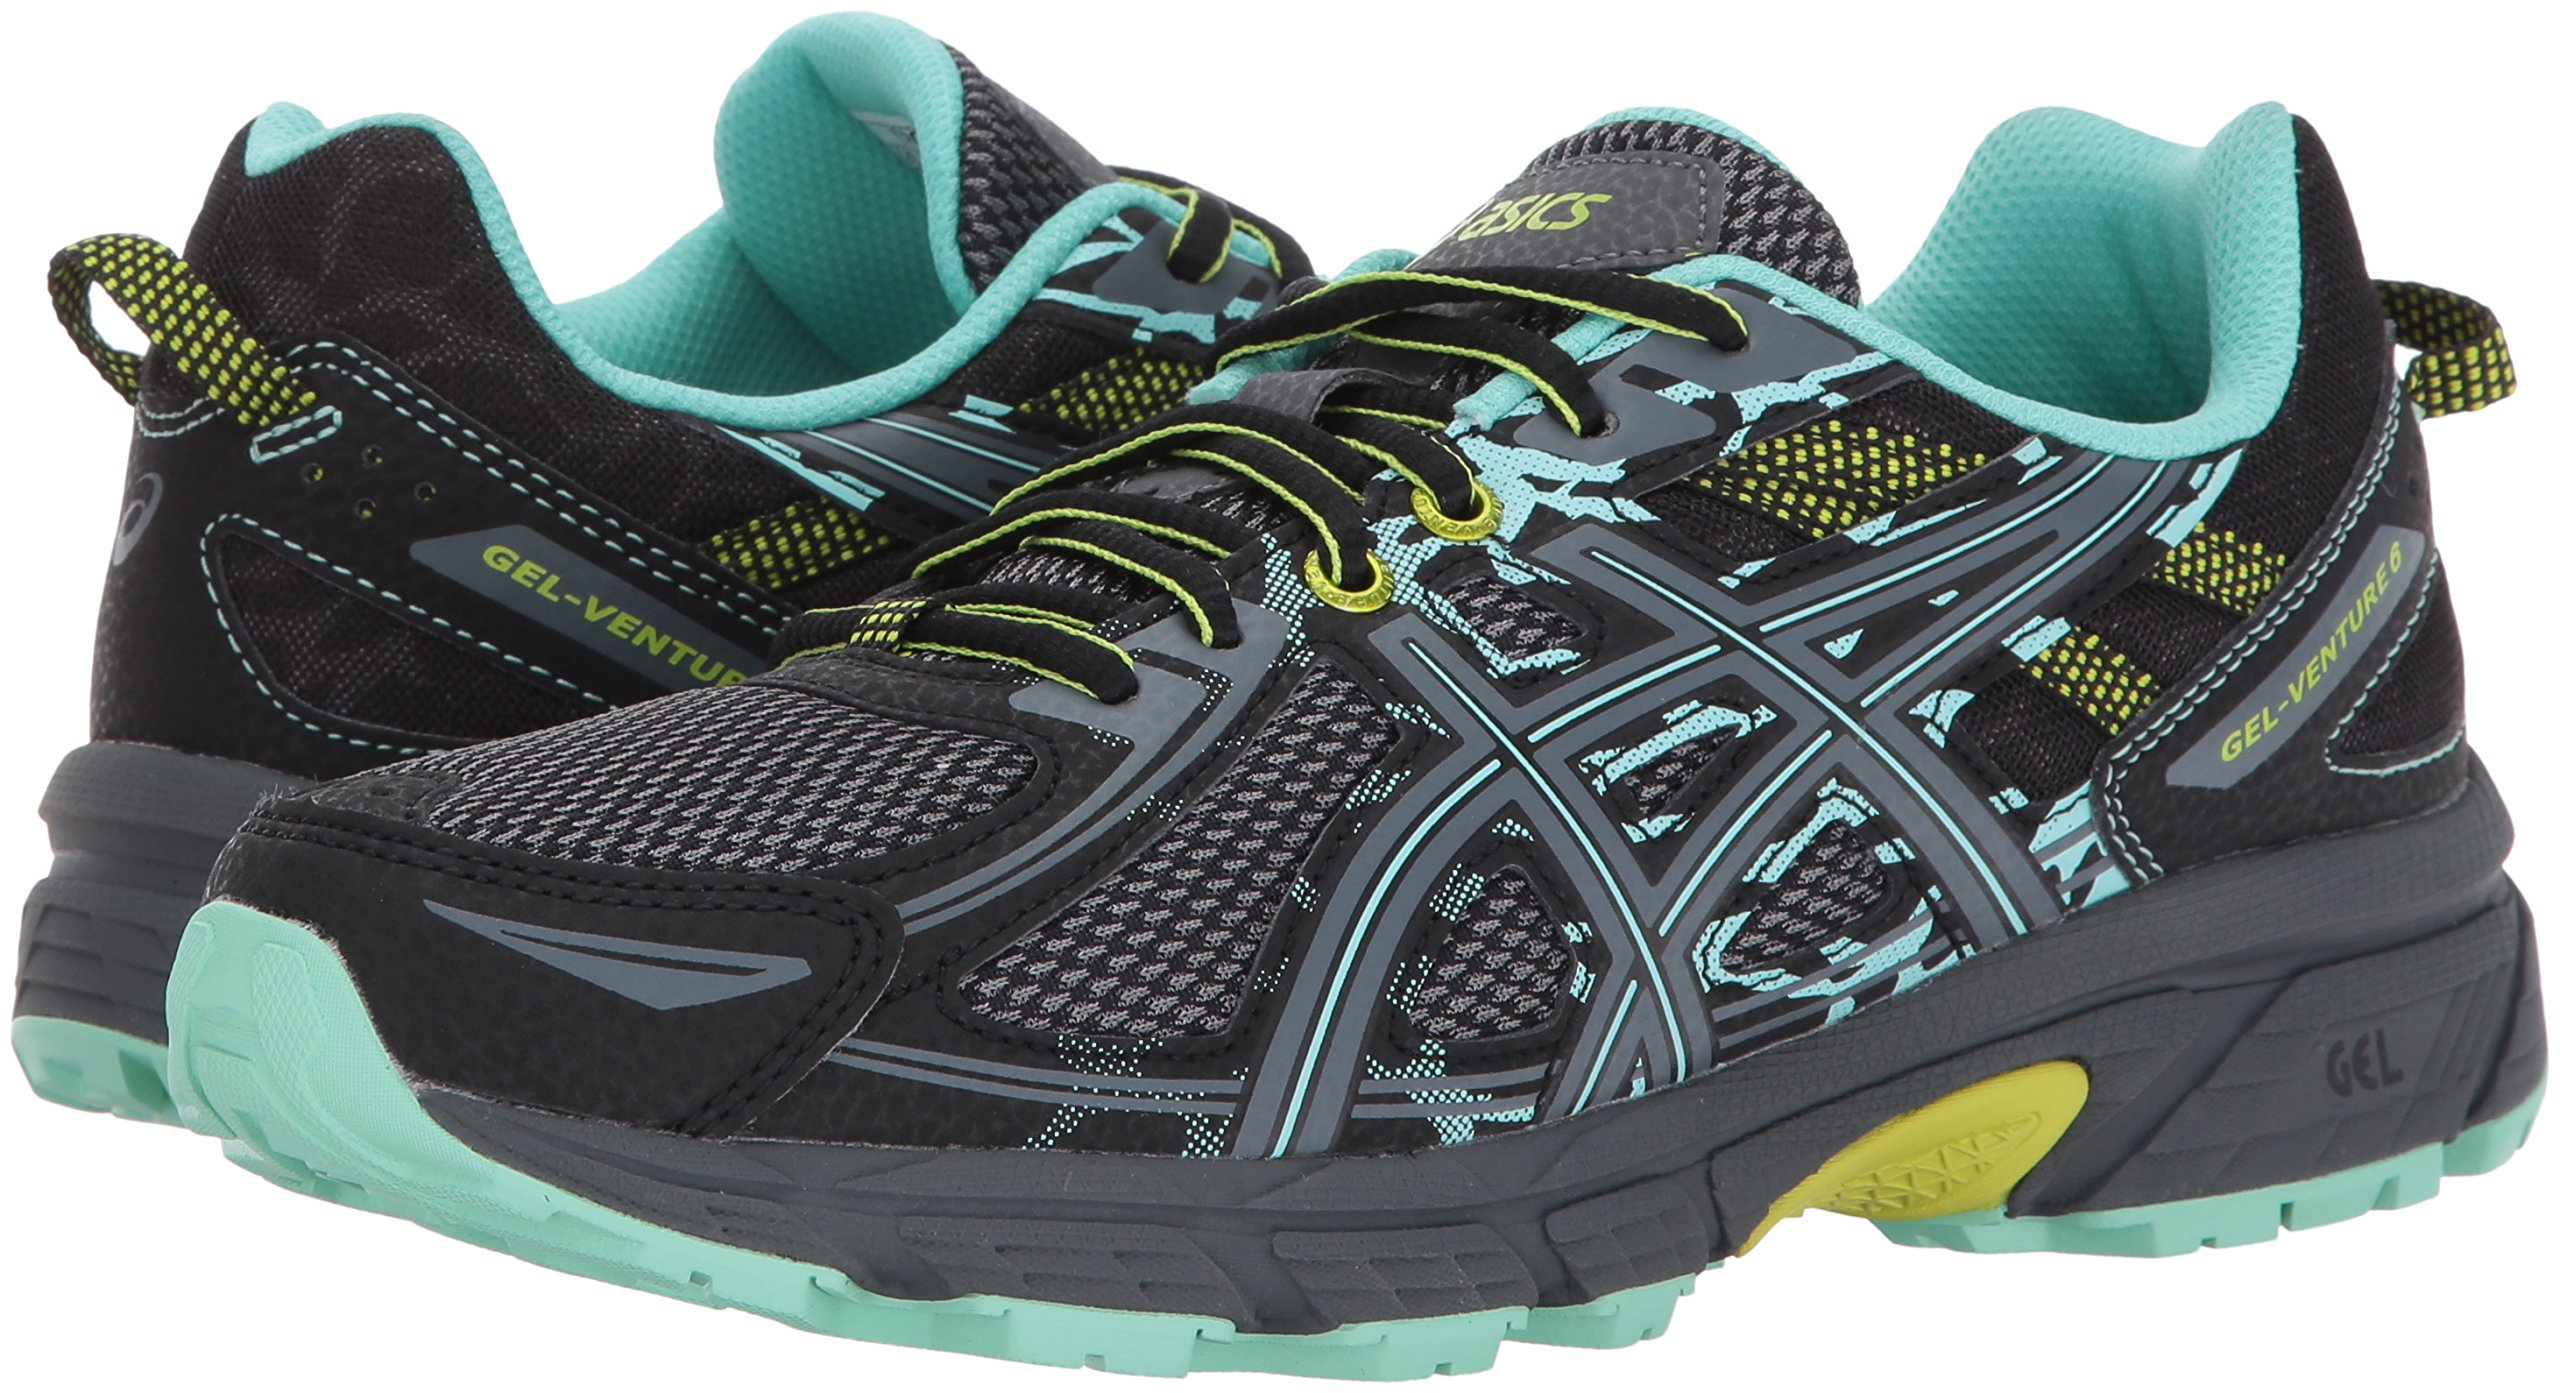 ASICS Women's Gel-Venture 6 Running-Shoes,Black/Carbon/Neon Lime,5 Medium US by ASICS (Image #6)